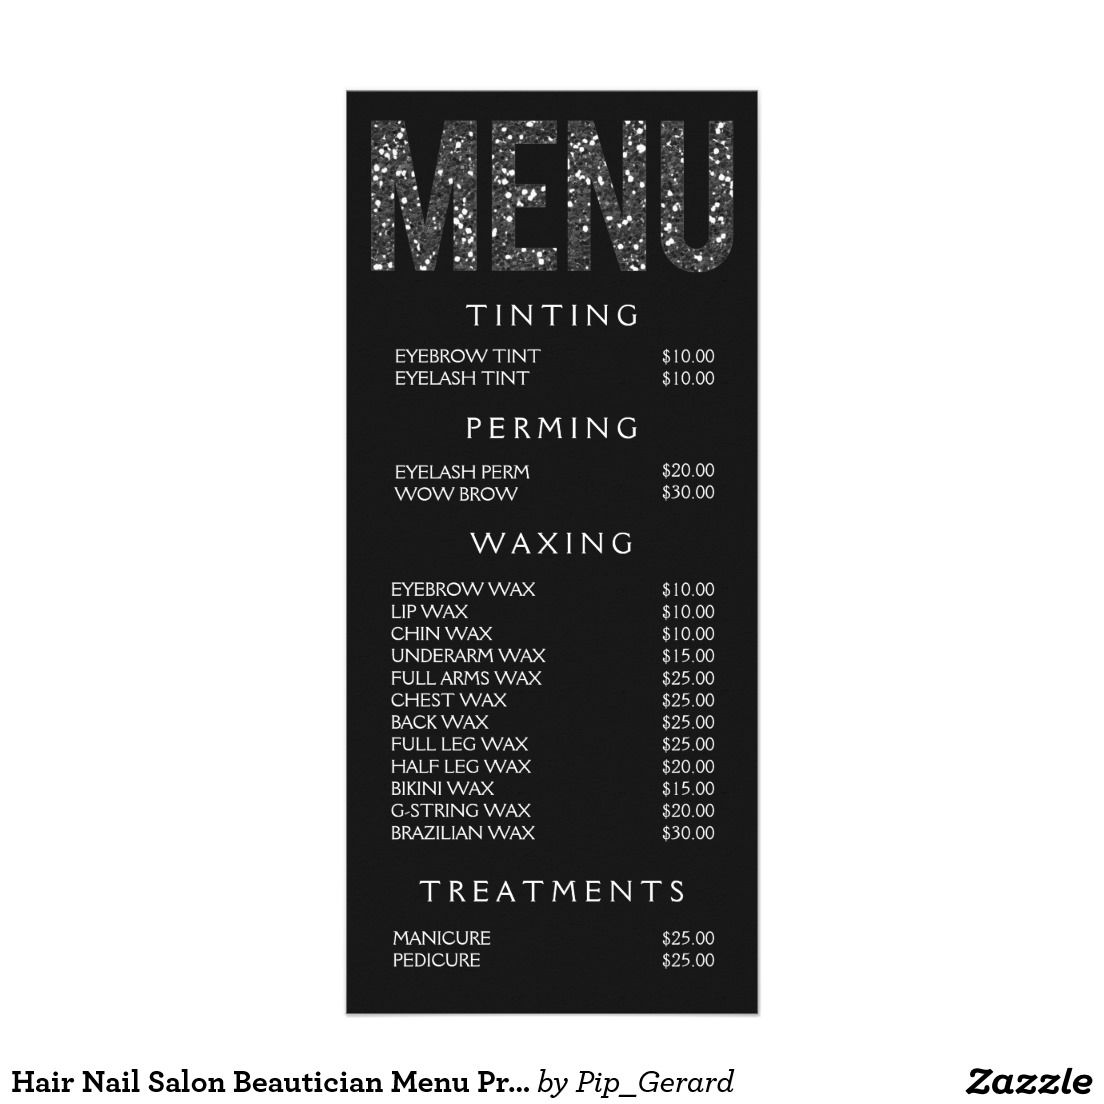 Hair Nail Salon Beautician Menu Price List